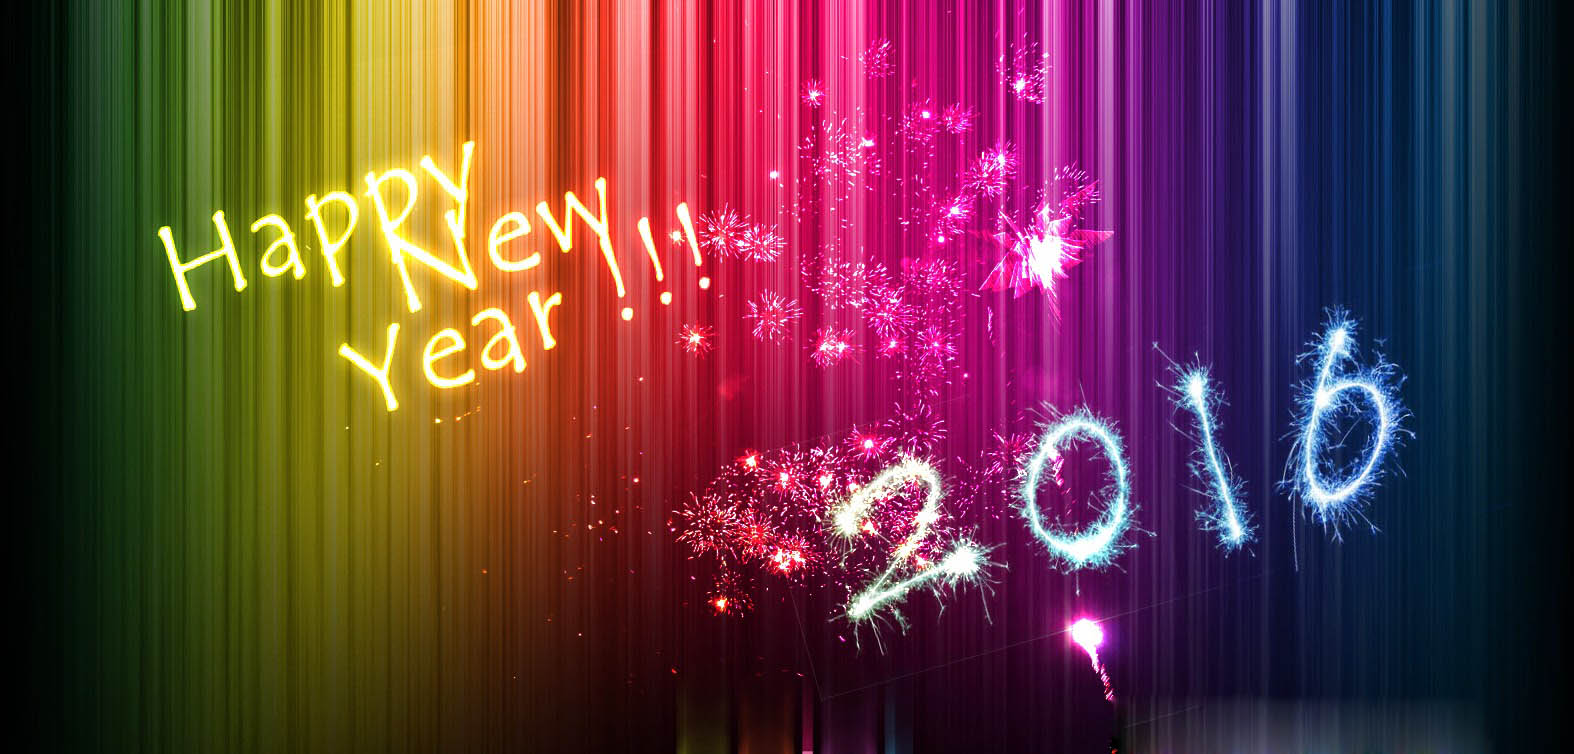 Happy New Year 2016 Wallpapers Images Pics and Pictures by jangoboy 1574x754